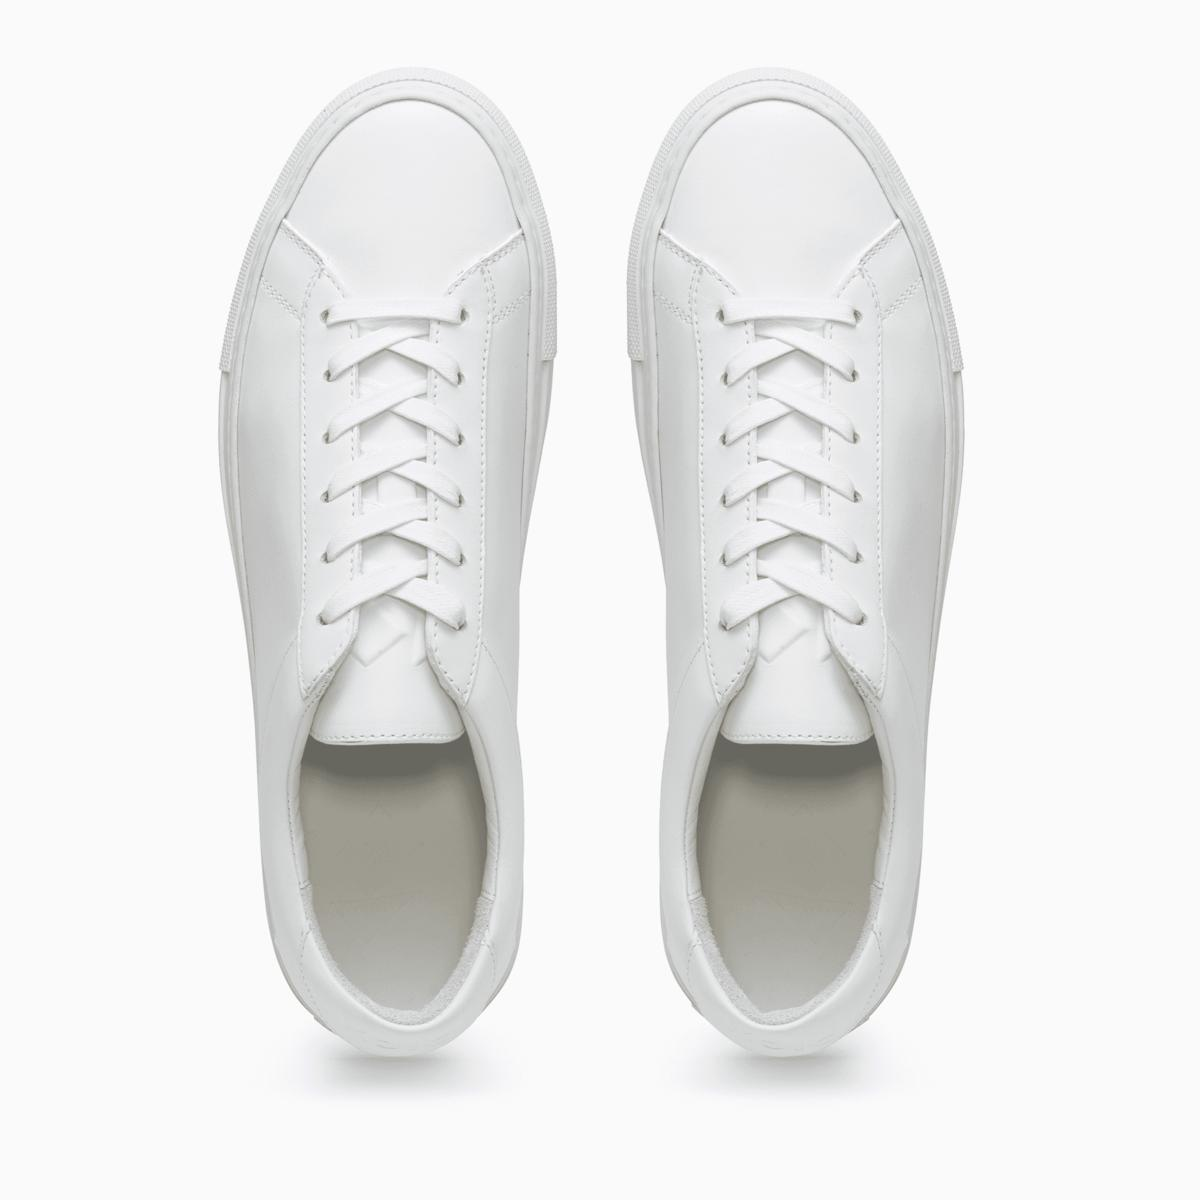 Shoes Top View Png - Men's Low Top Leather Sneaker in White | Capri Triple White | KOIO